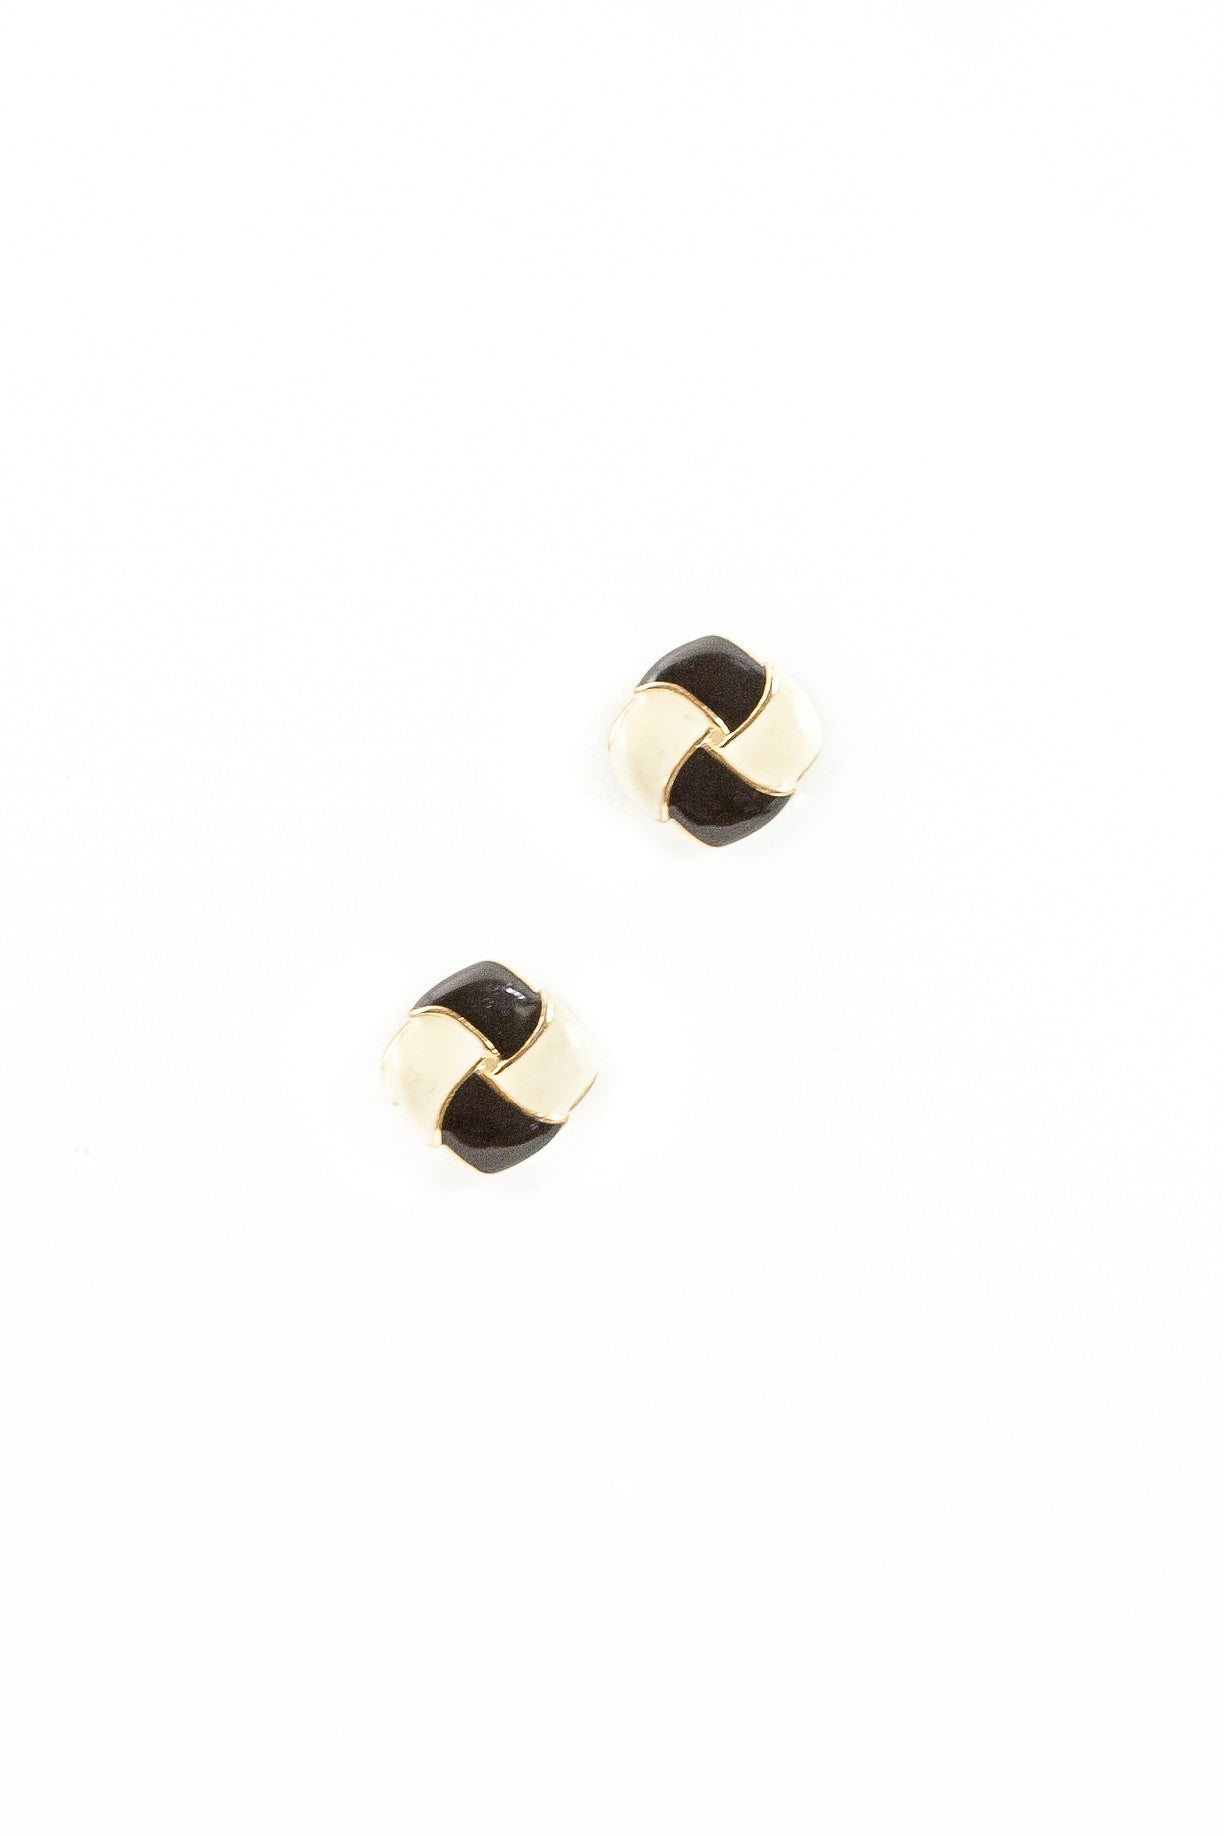 70's__Vintage__Checkered Square Earrings